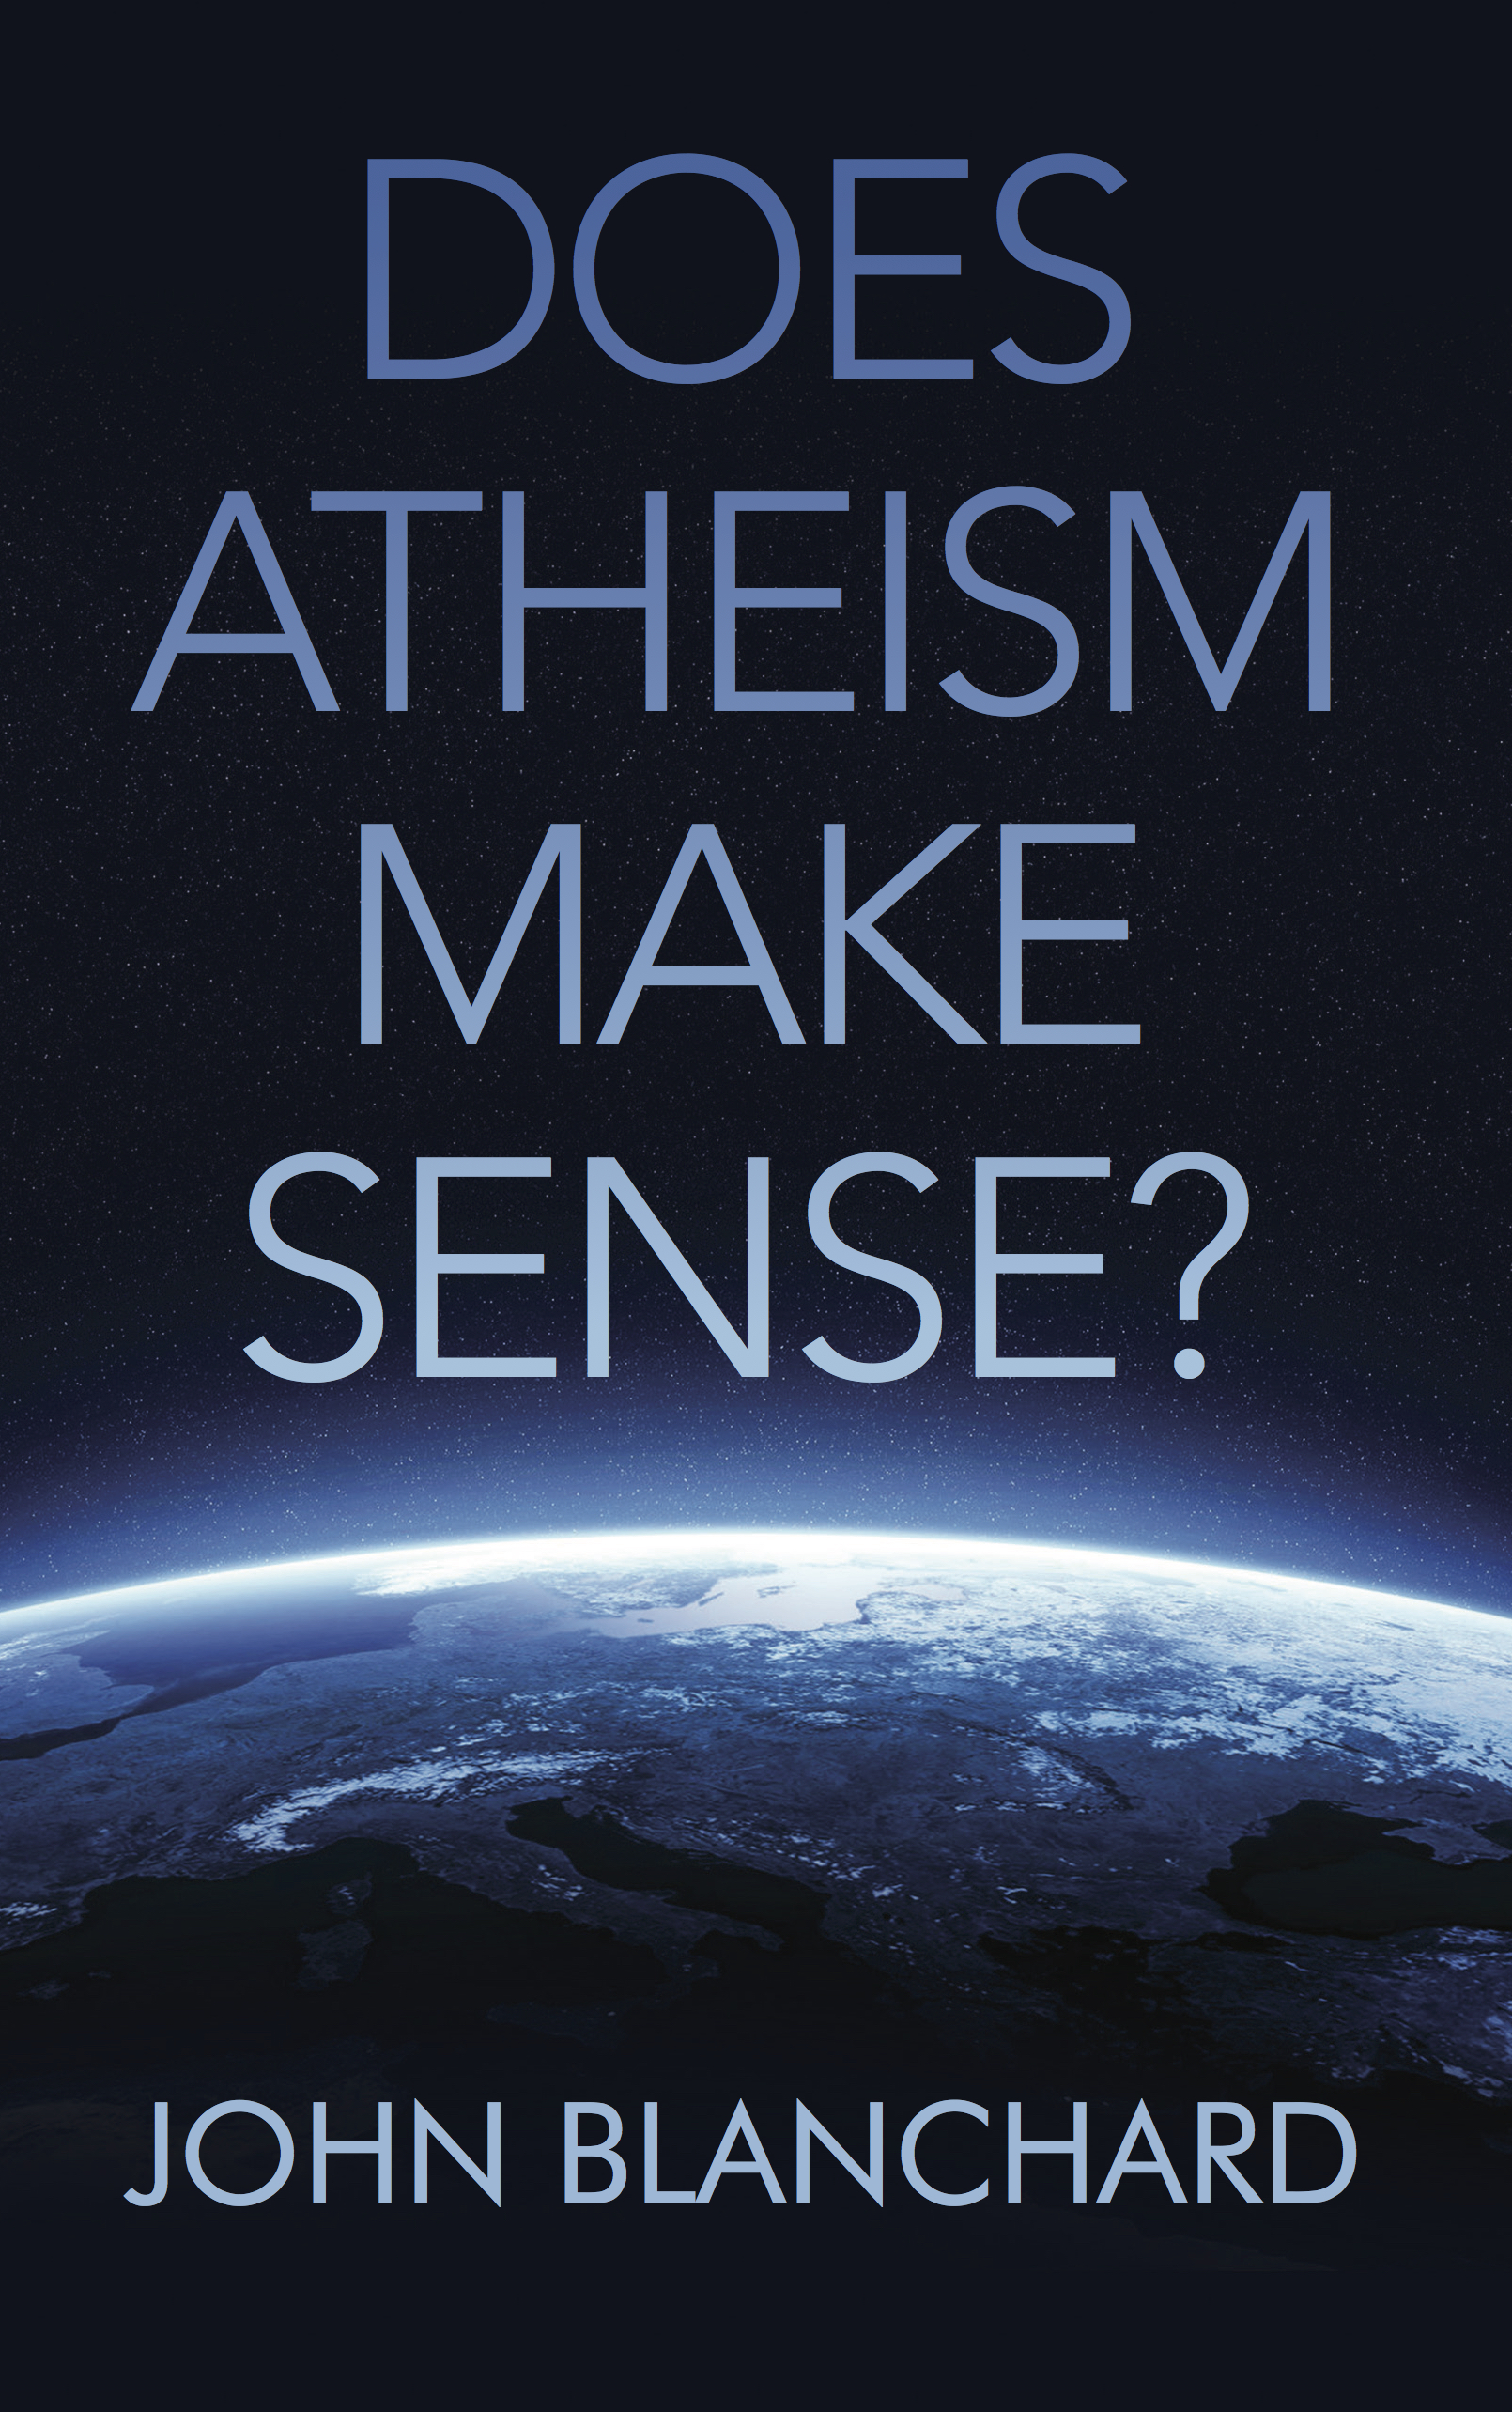 Ep Books The Store For Books: Does Atheism Make Sense? By John Blanchard